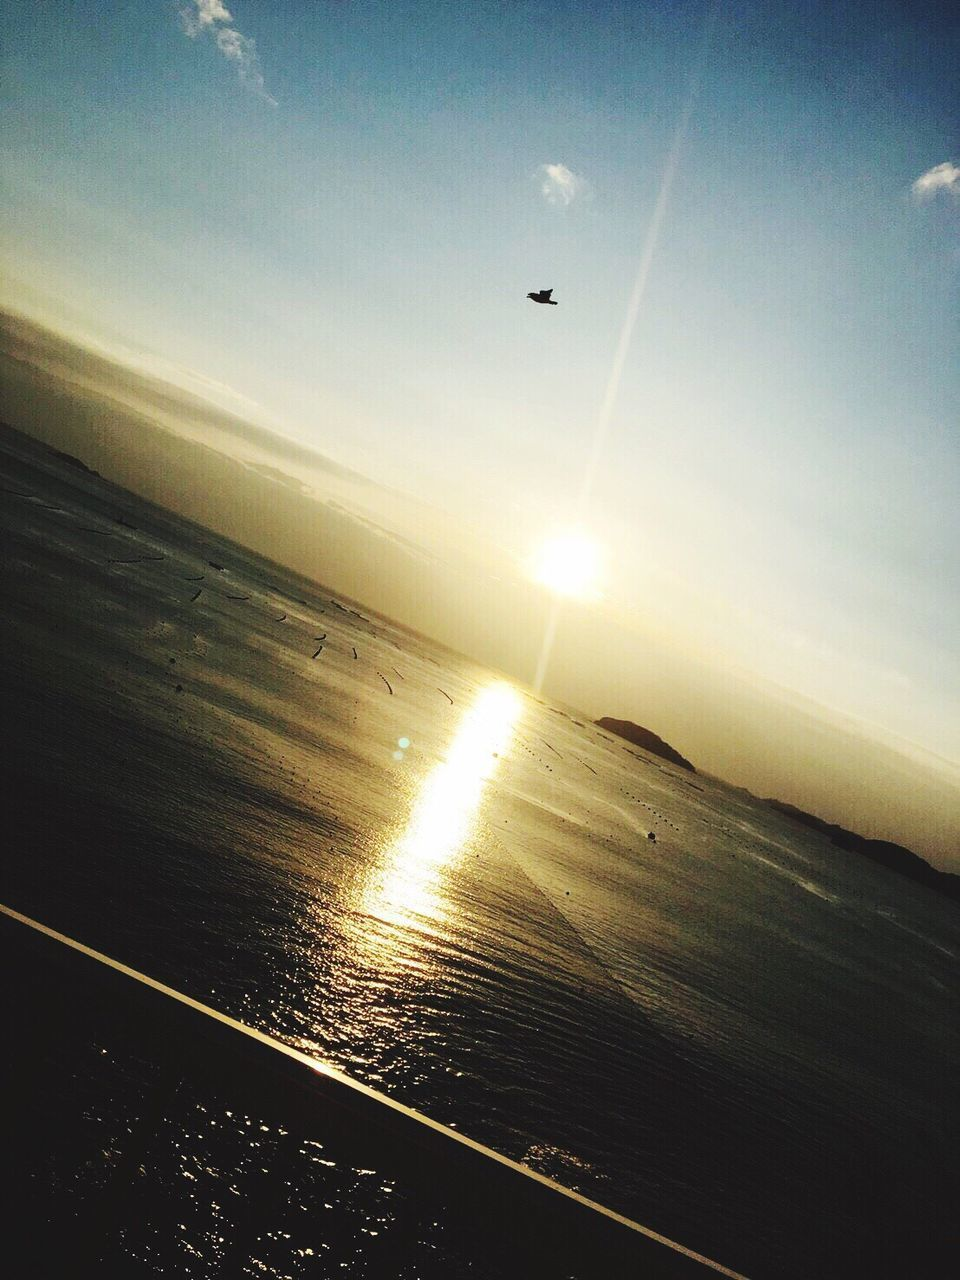 sea, nature, horizon over water, sun, water, sunset, scenics, flying, transportation, beauty in nature, sky, tranquil scene, sunlight, outdoors, no people, tranquility, mid-air, airplane, day, airplane wing